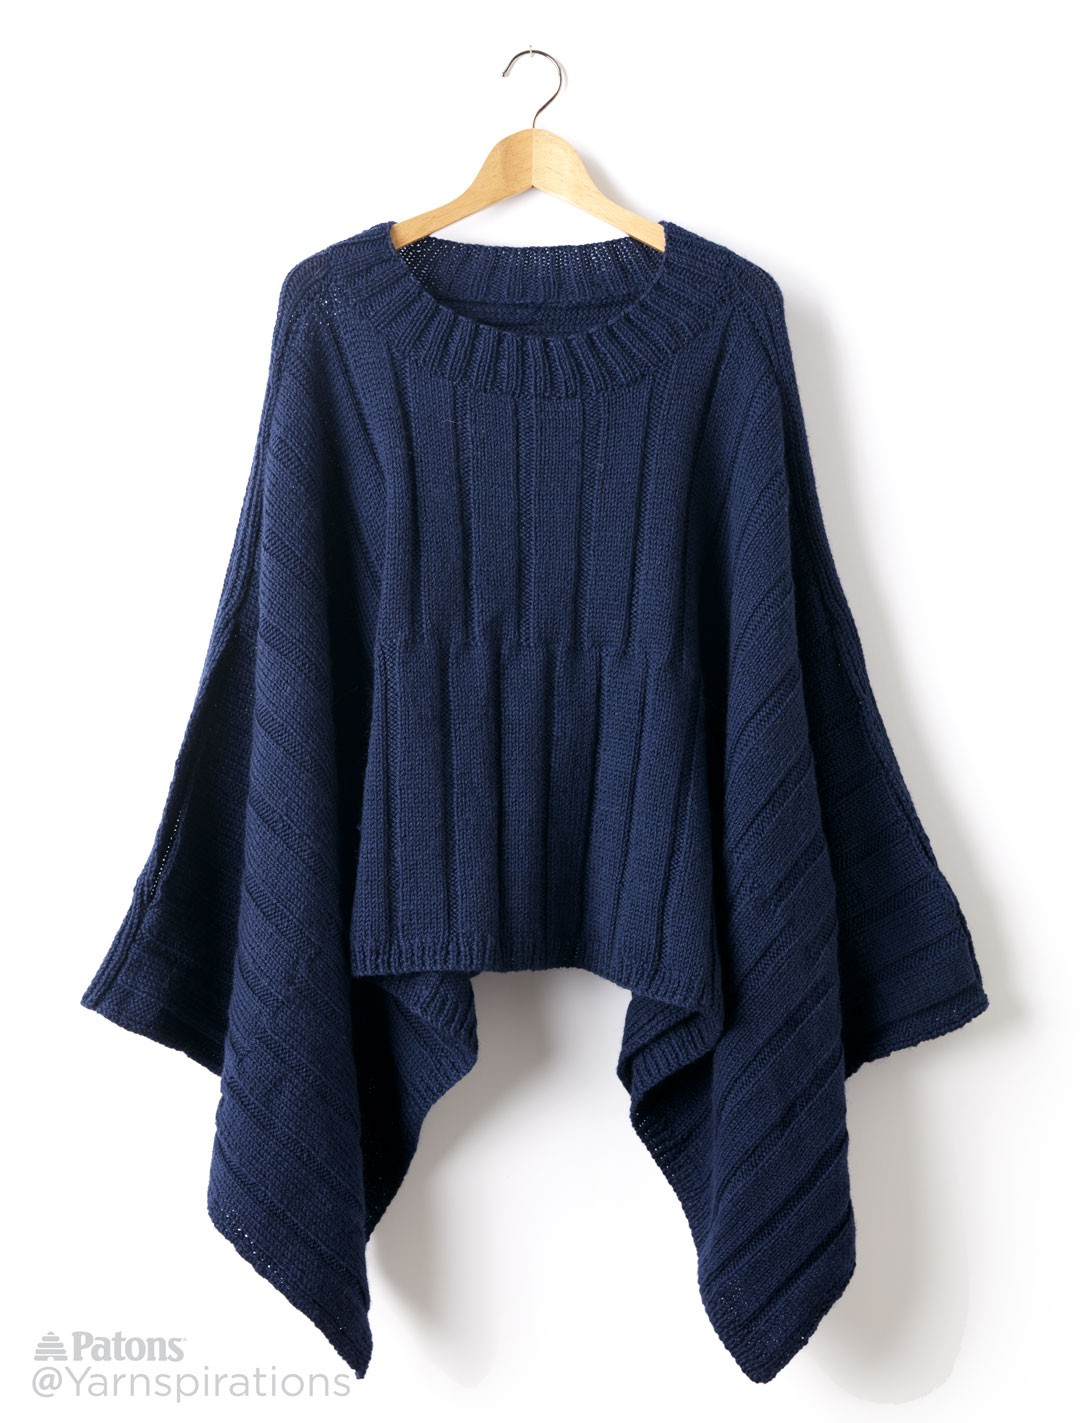 Pattern For Knitted Poncho : Patons Reversible Ribbed Knit Poncho, Knit Pattern Yarnspirations